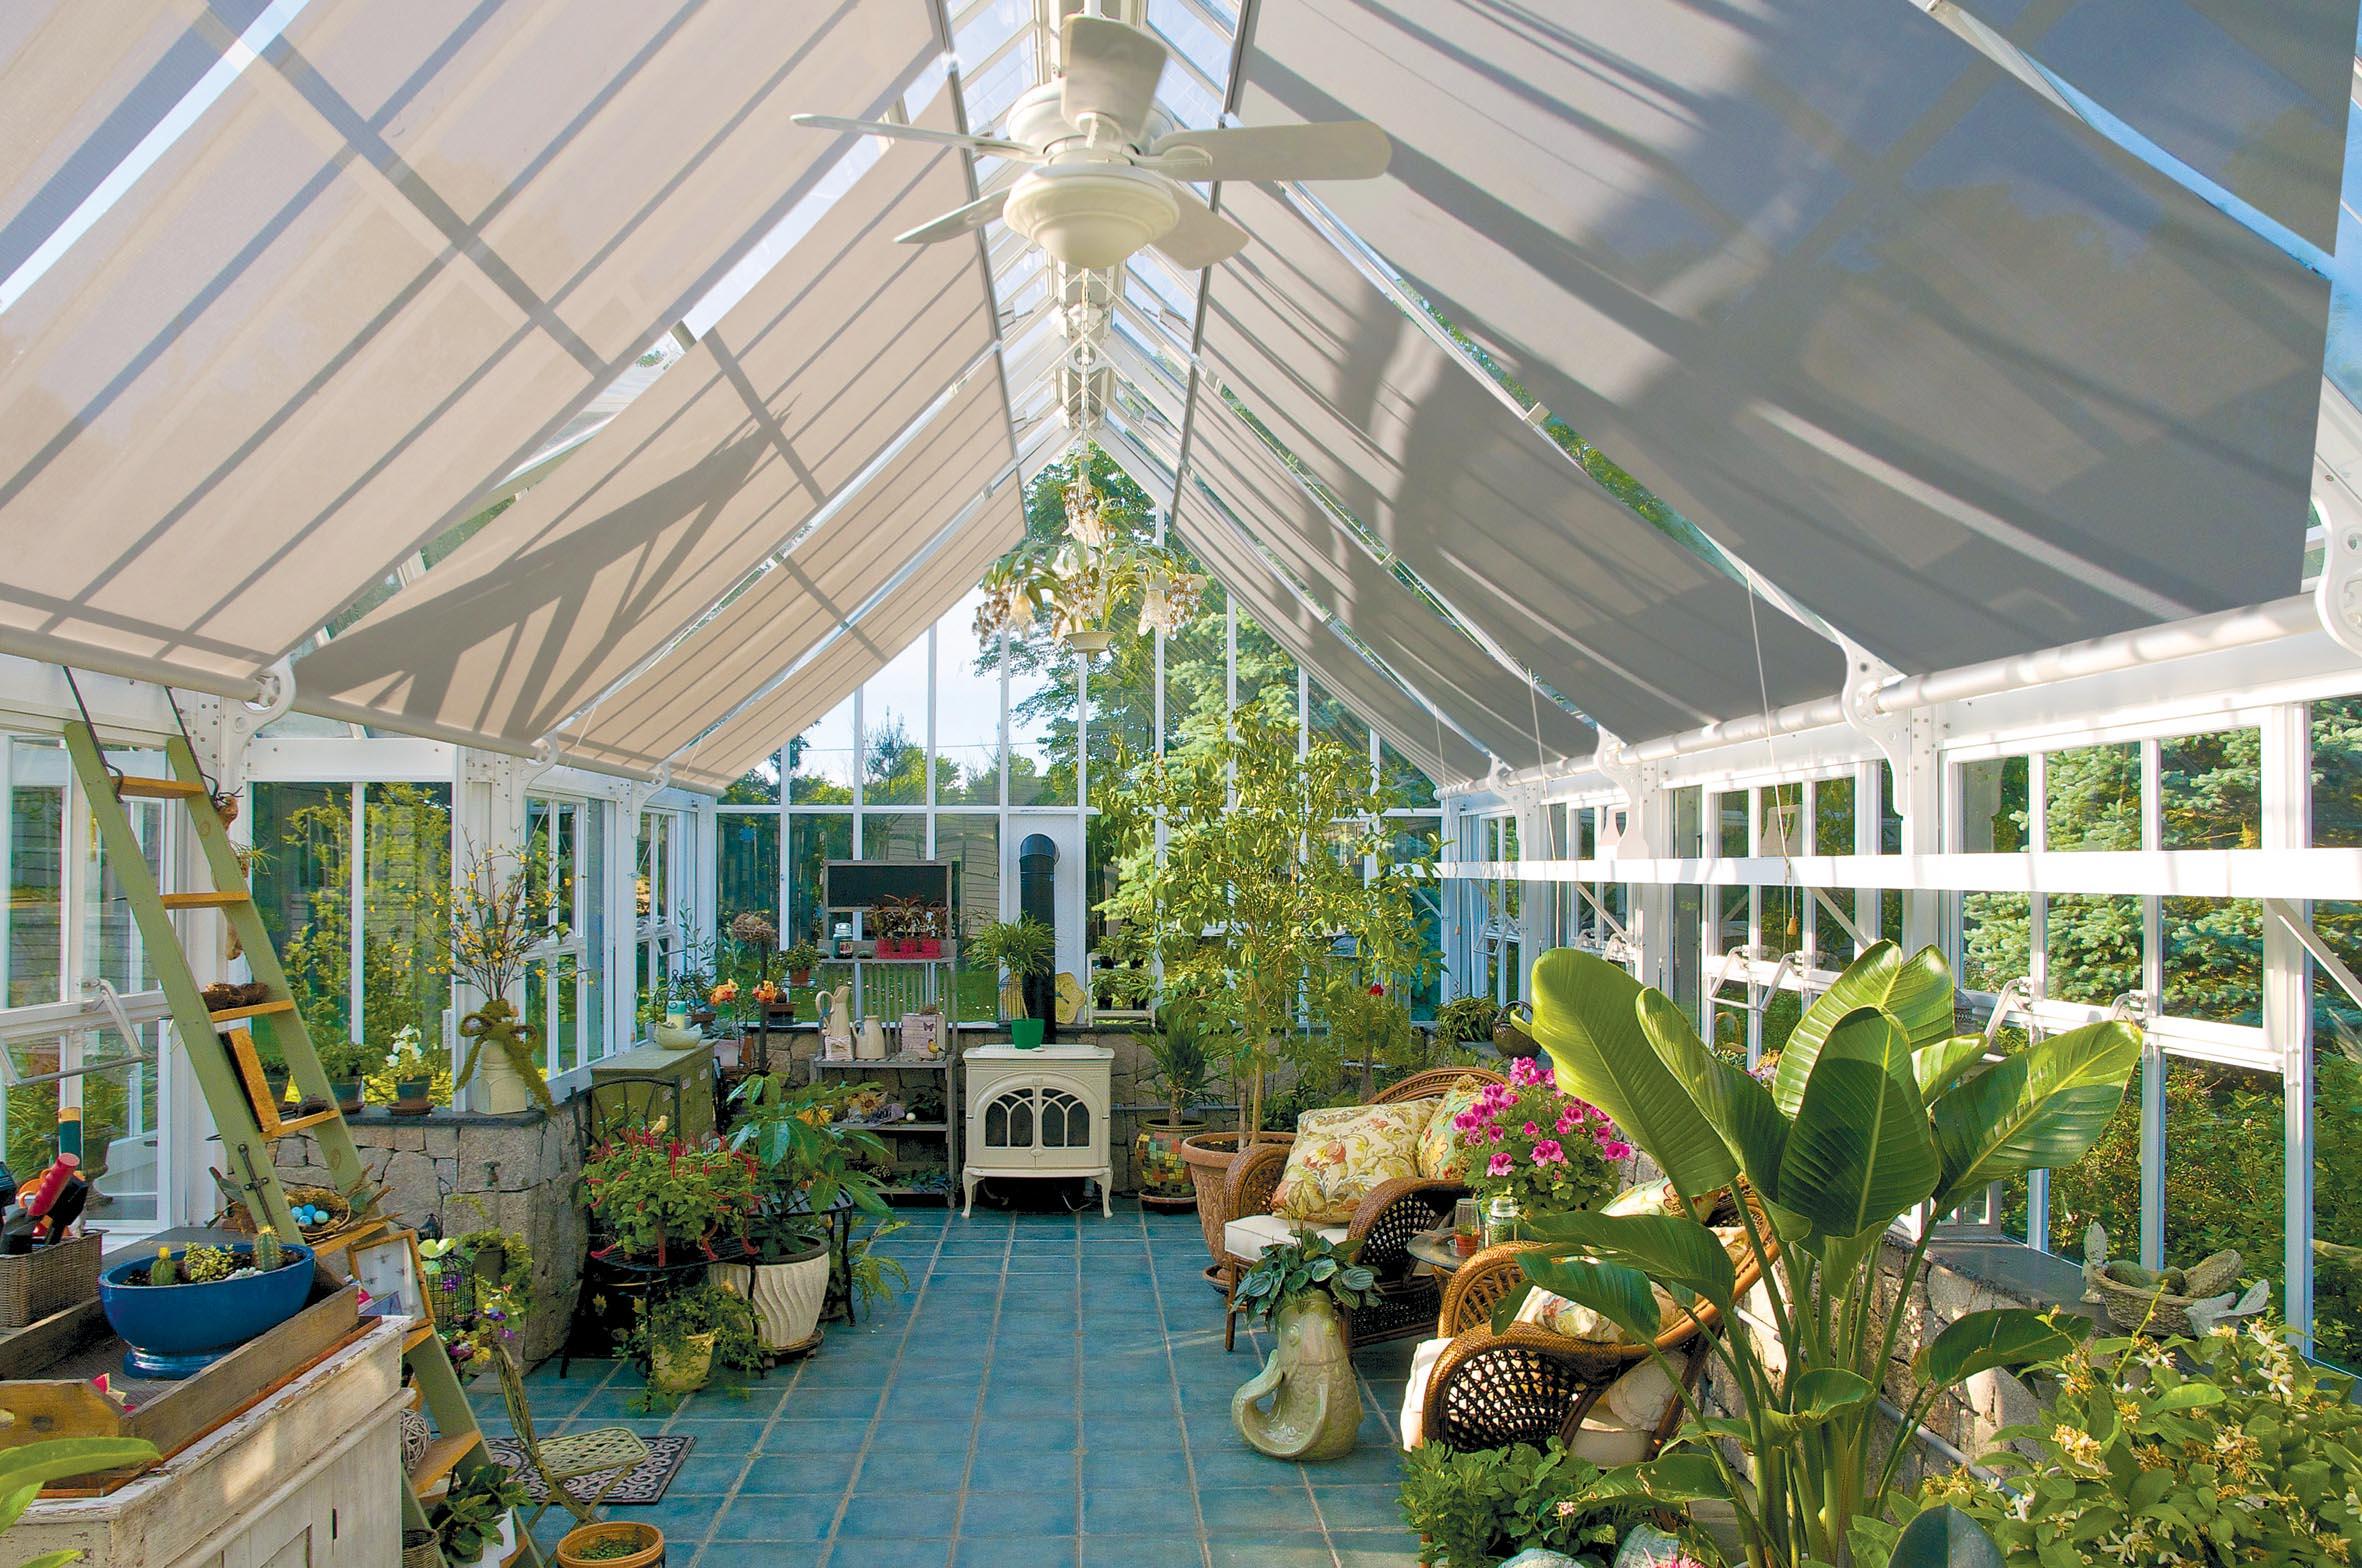 The greenhouse crozet - Full Roof Blinds To Shade Out The Midday Sun